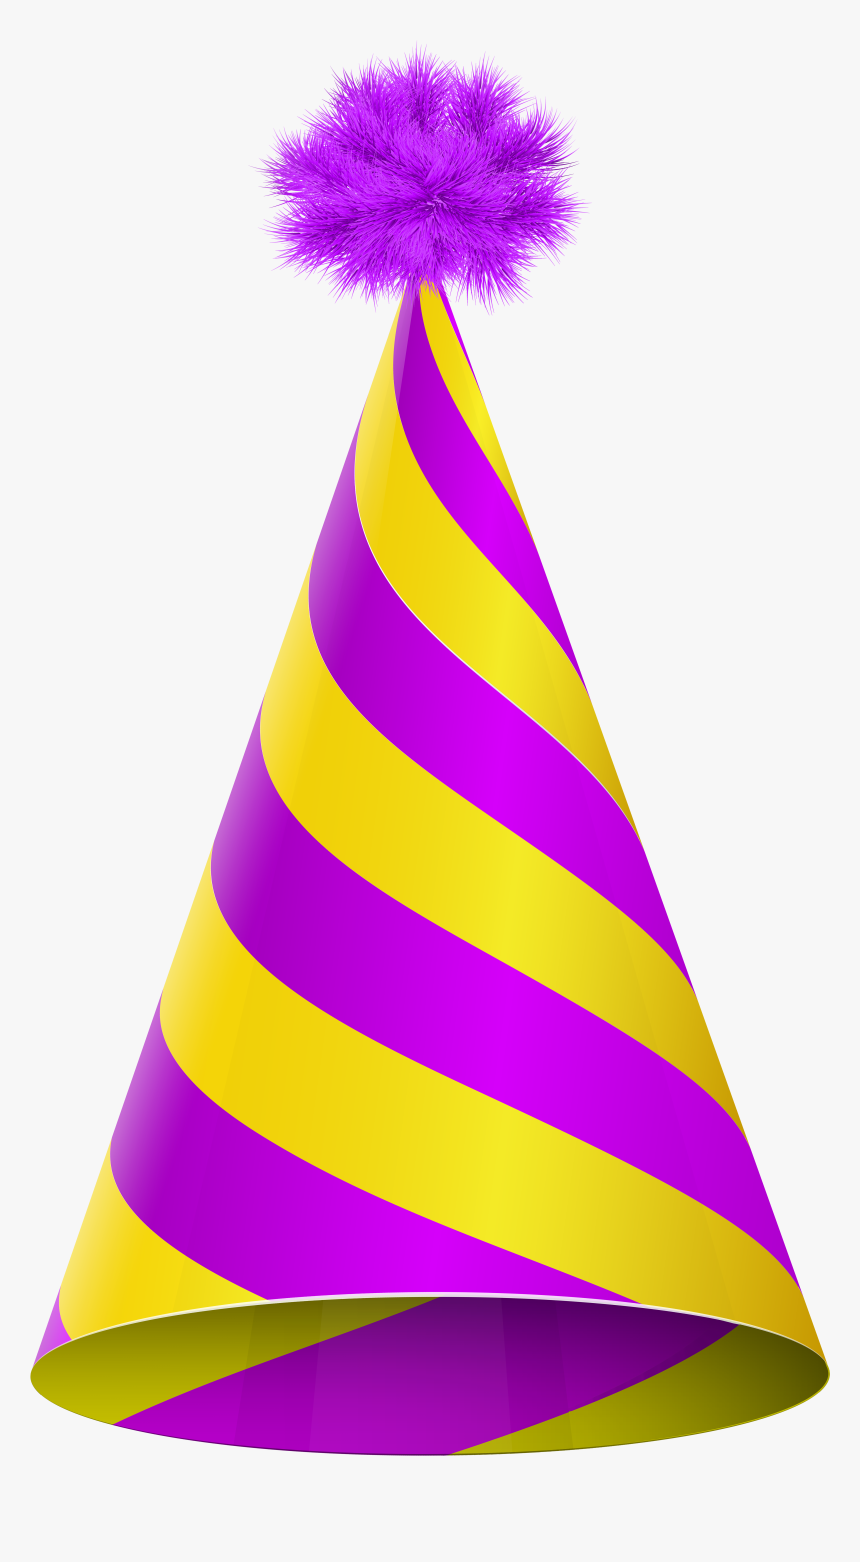 Birthday Hat Transparent Png For Kids - Yellow And Purple Party Hat, Png Download, Free Download